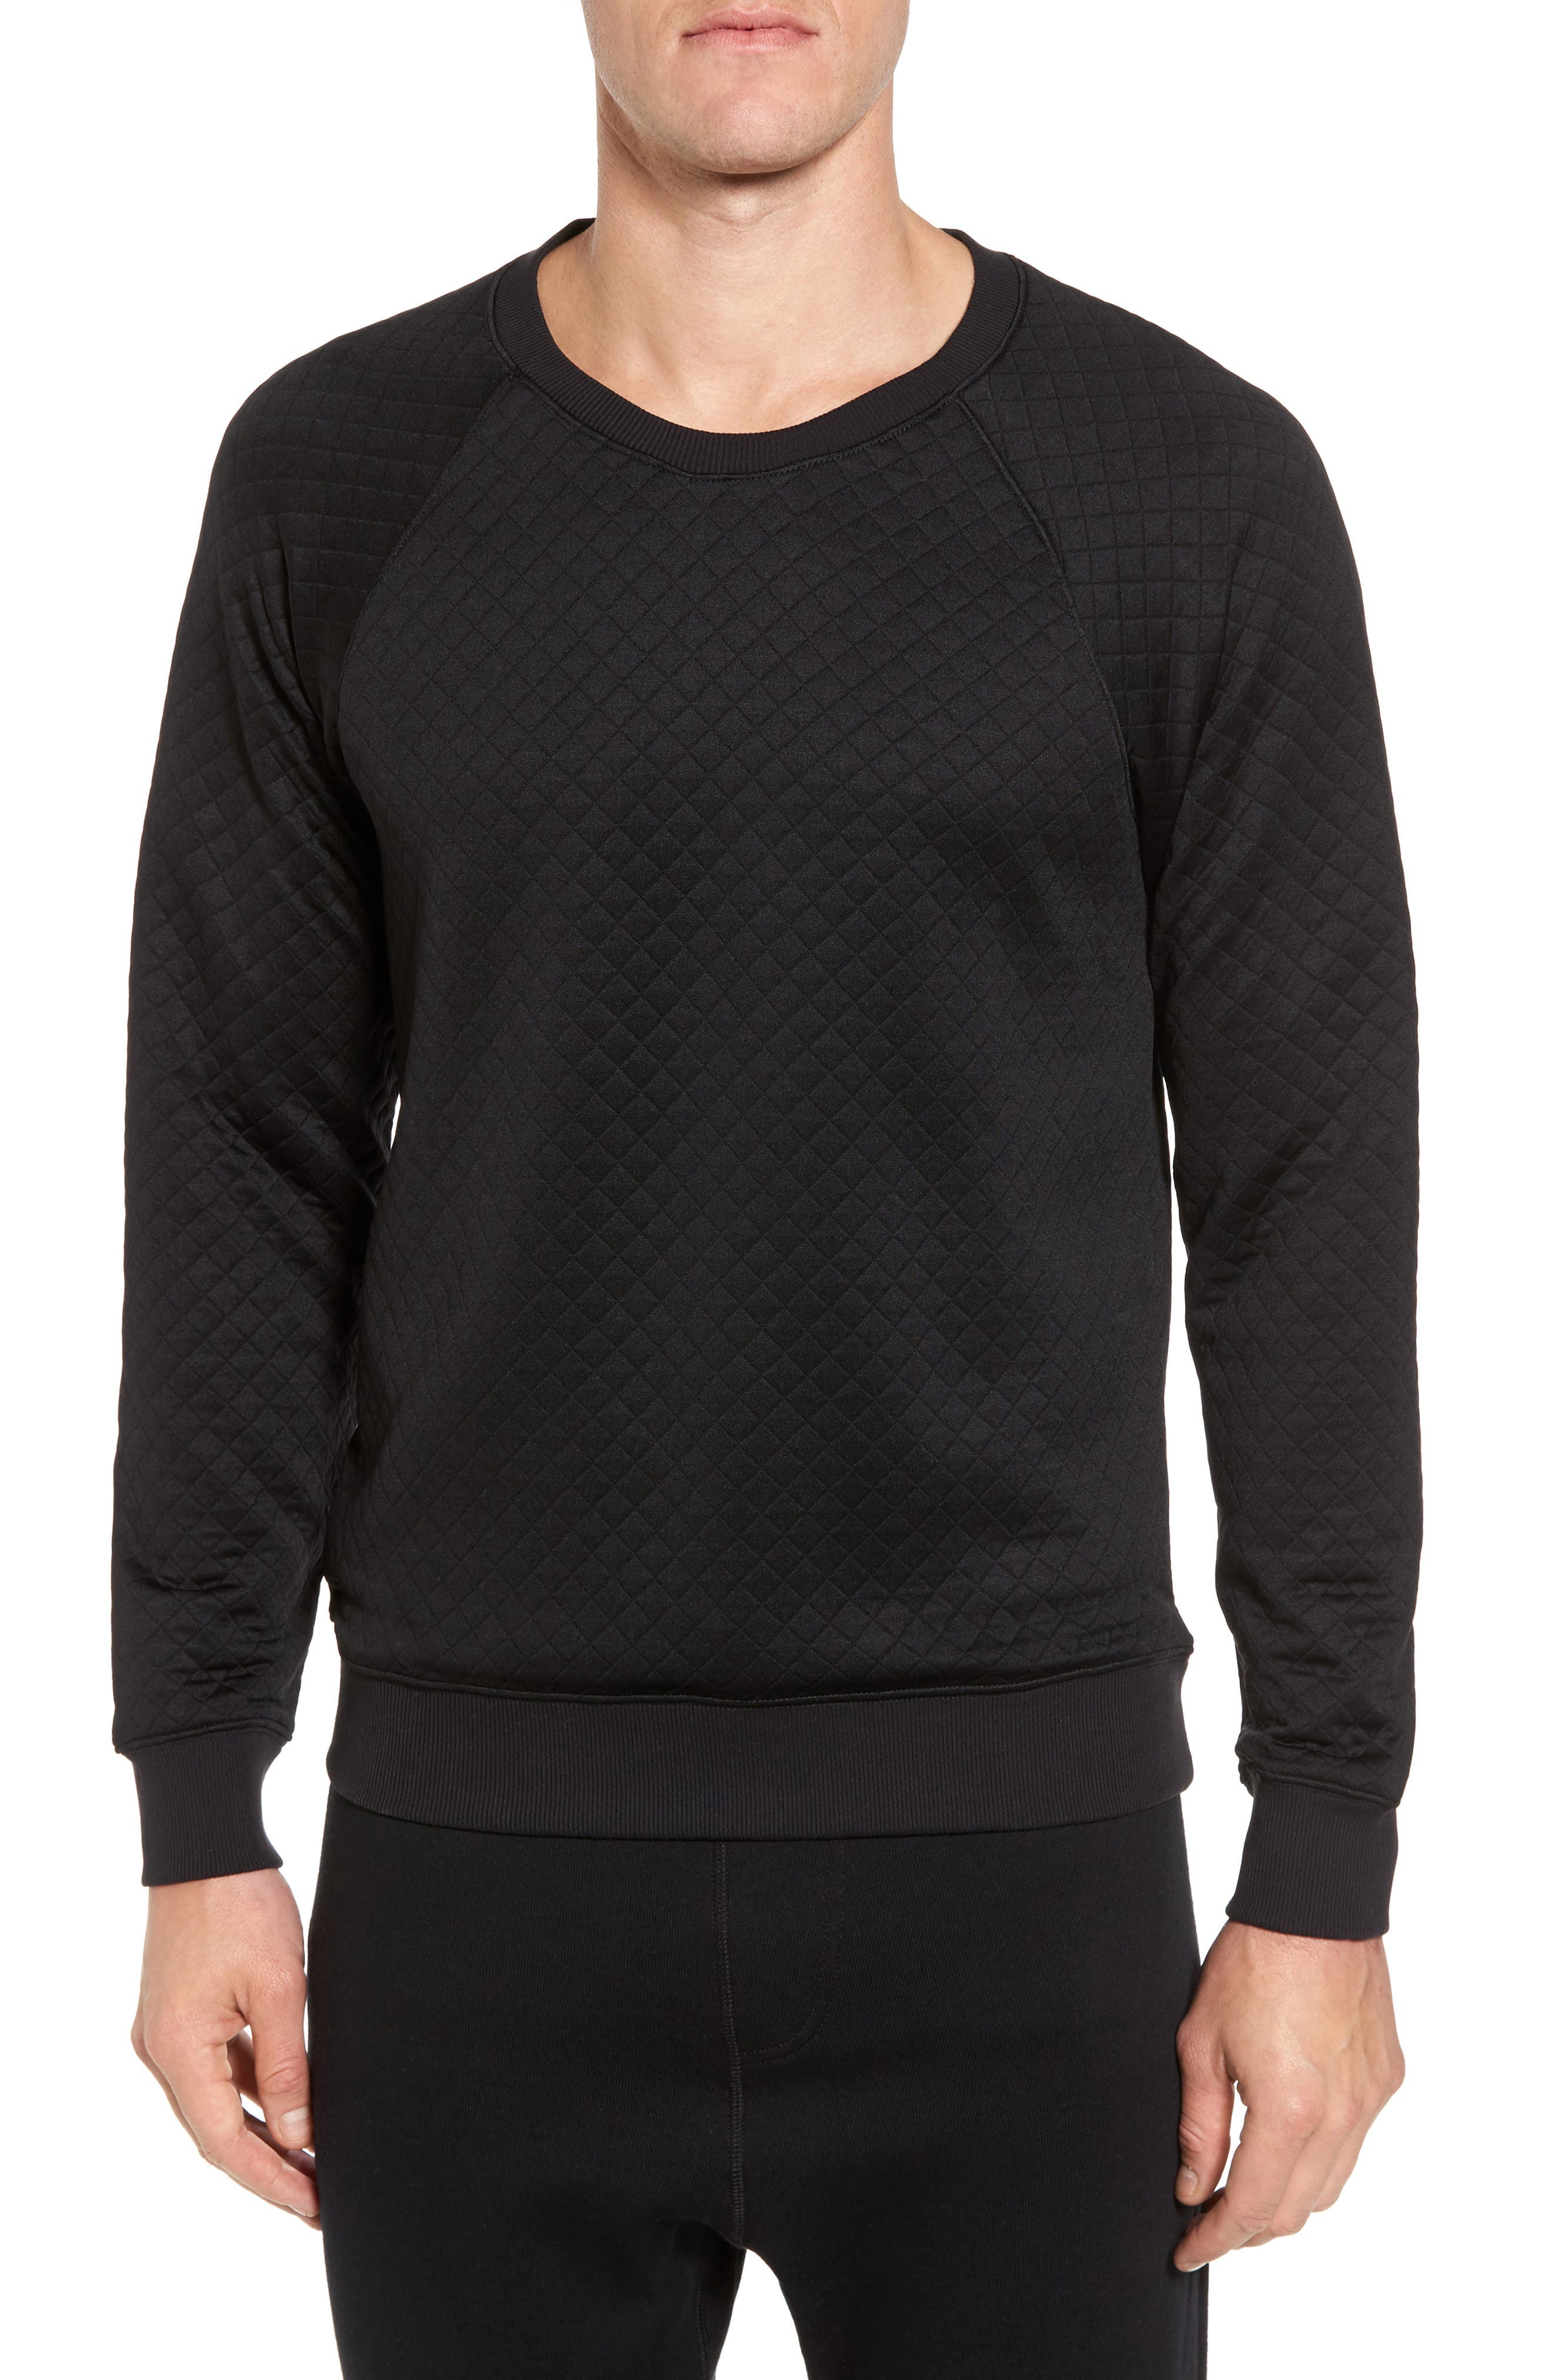 Yama Relaxed Slim Fit Quilted Sweatshirt,                             Main thumbnail 1, color,                             Black